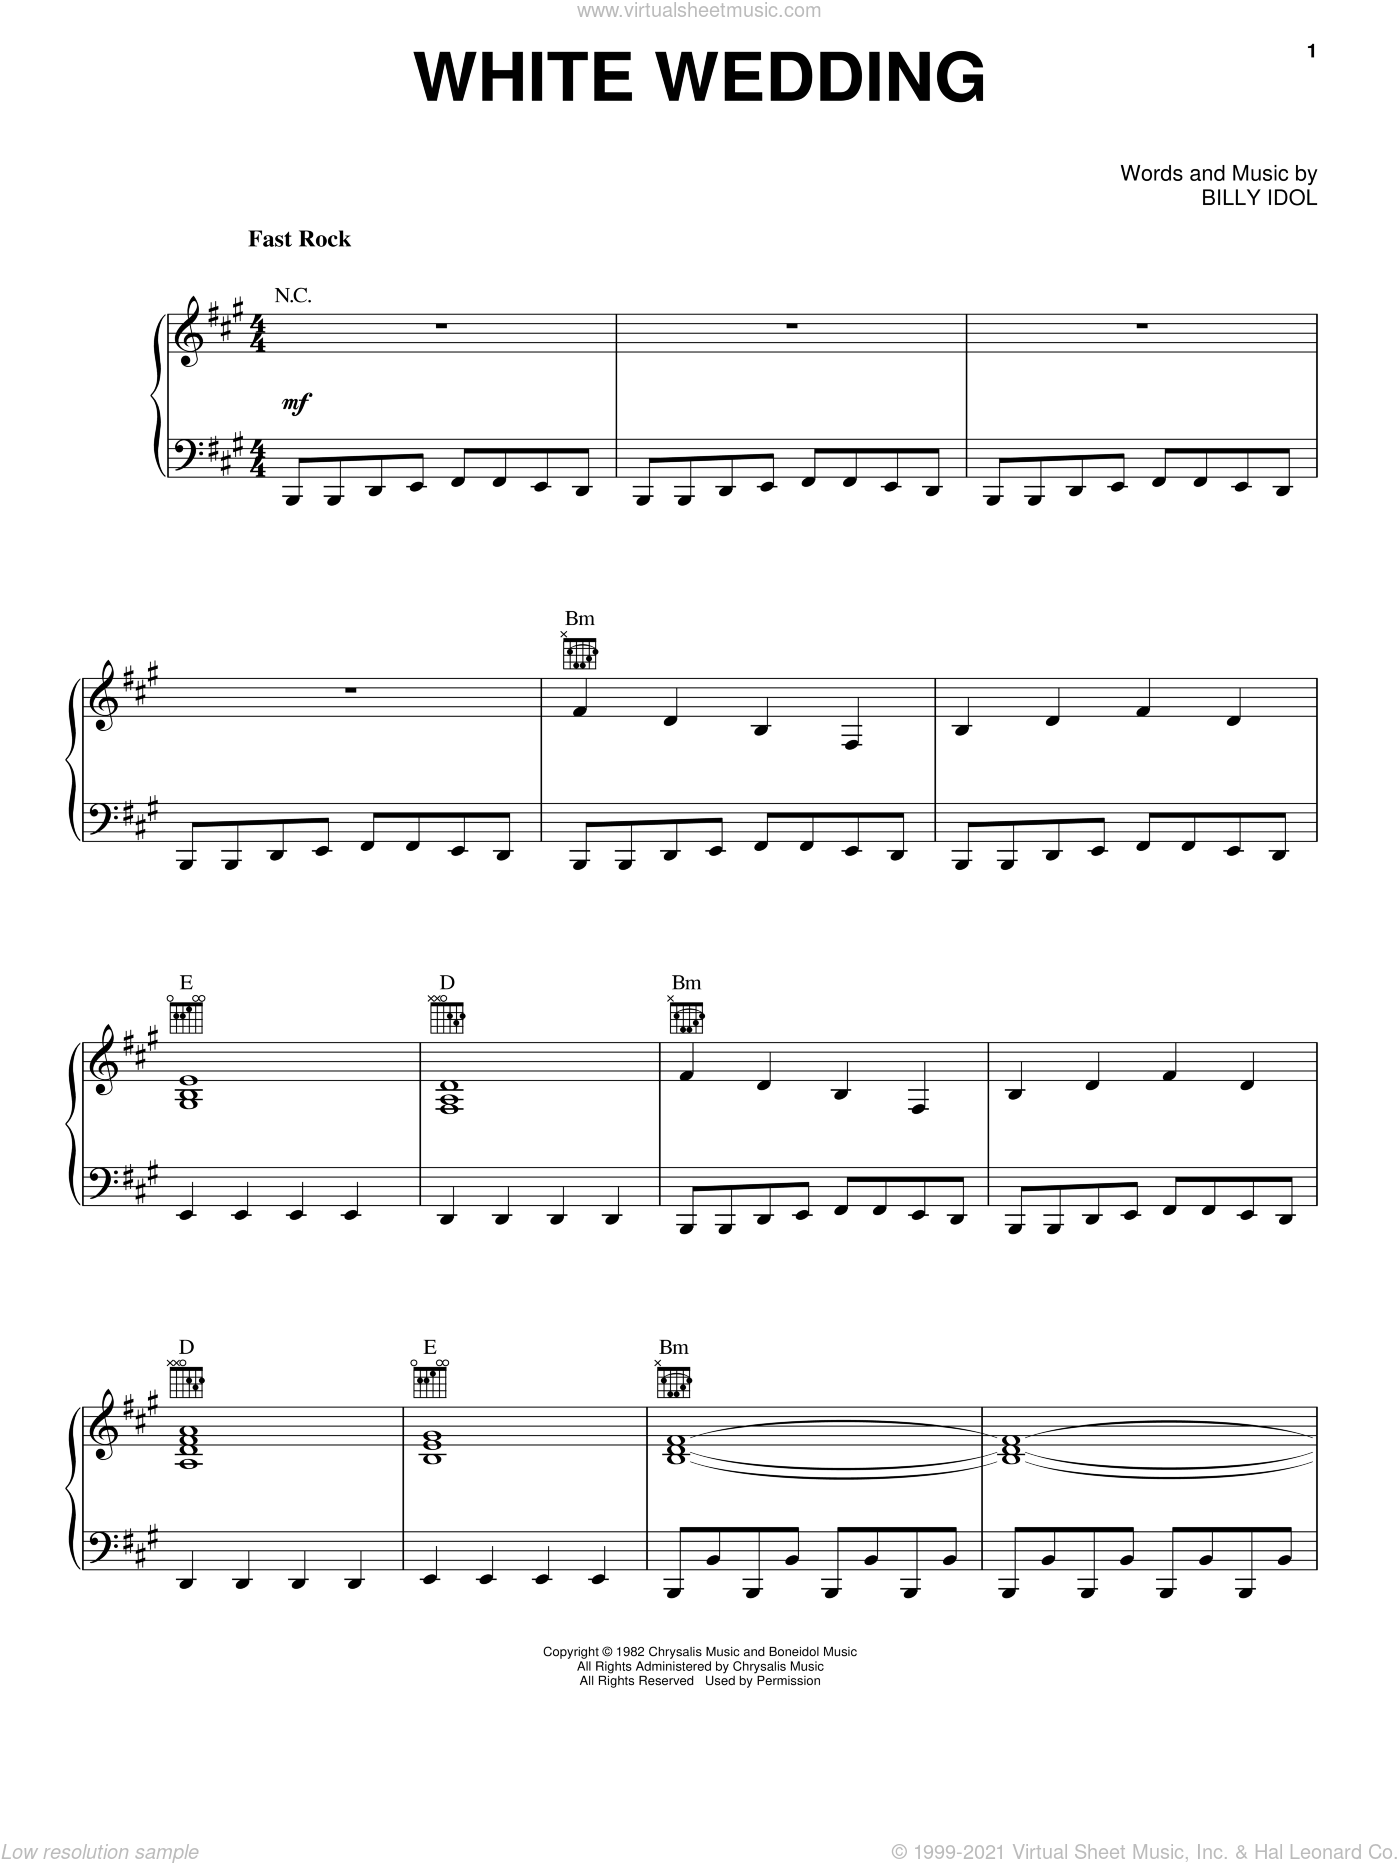 White Wedding sheet music for voice, piano or guitar by Billy Idol. Score Image Preview.